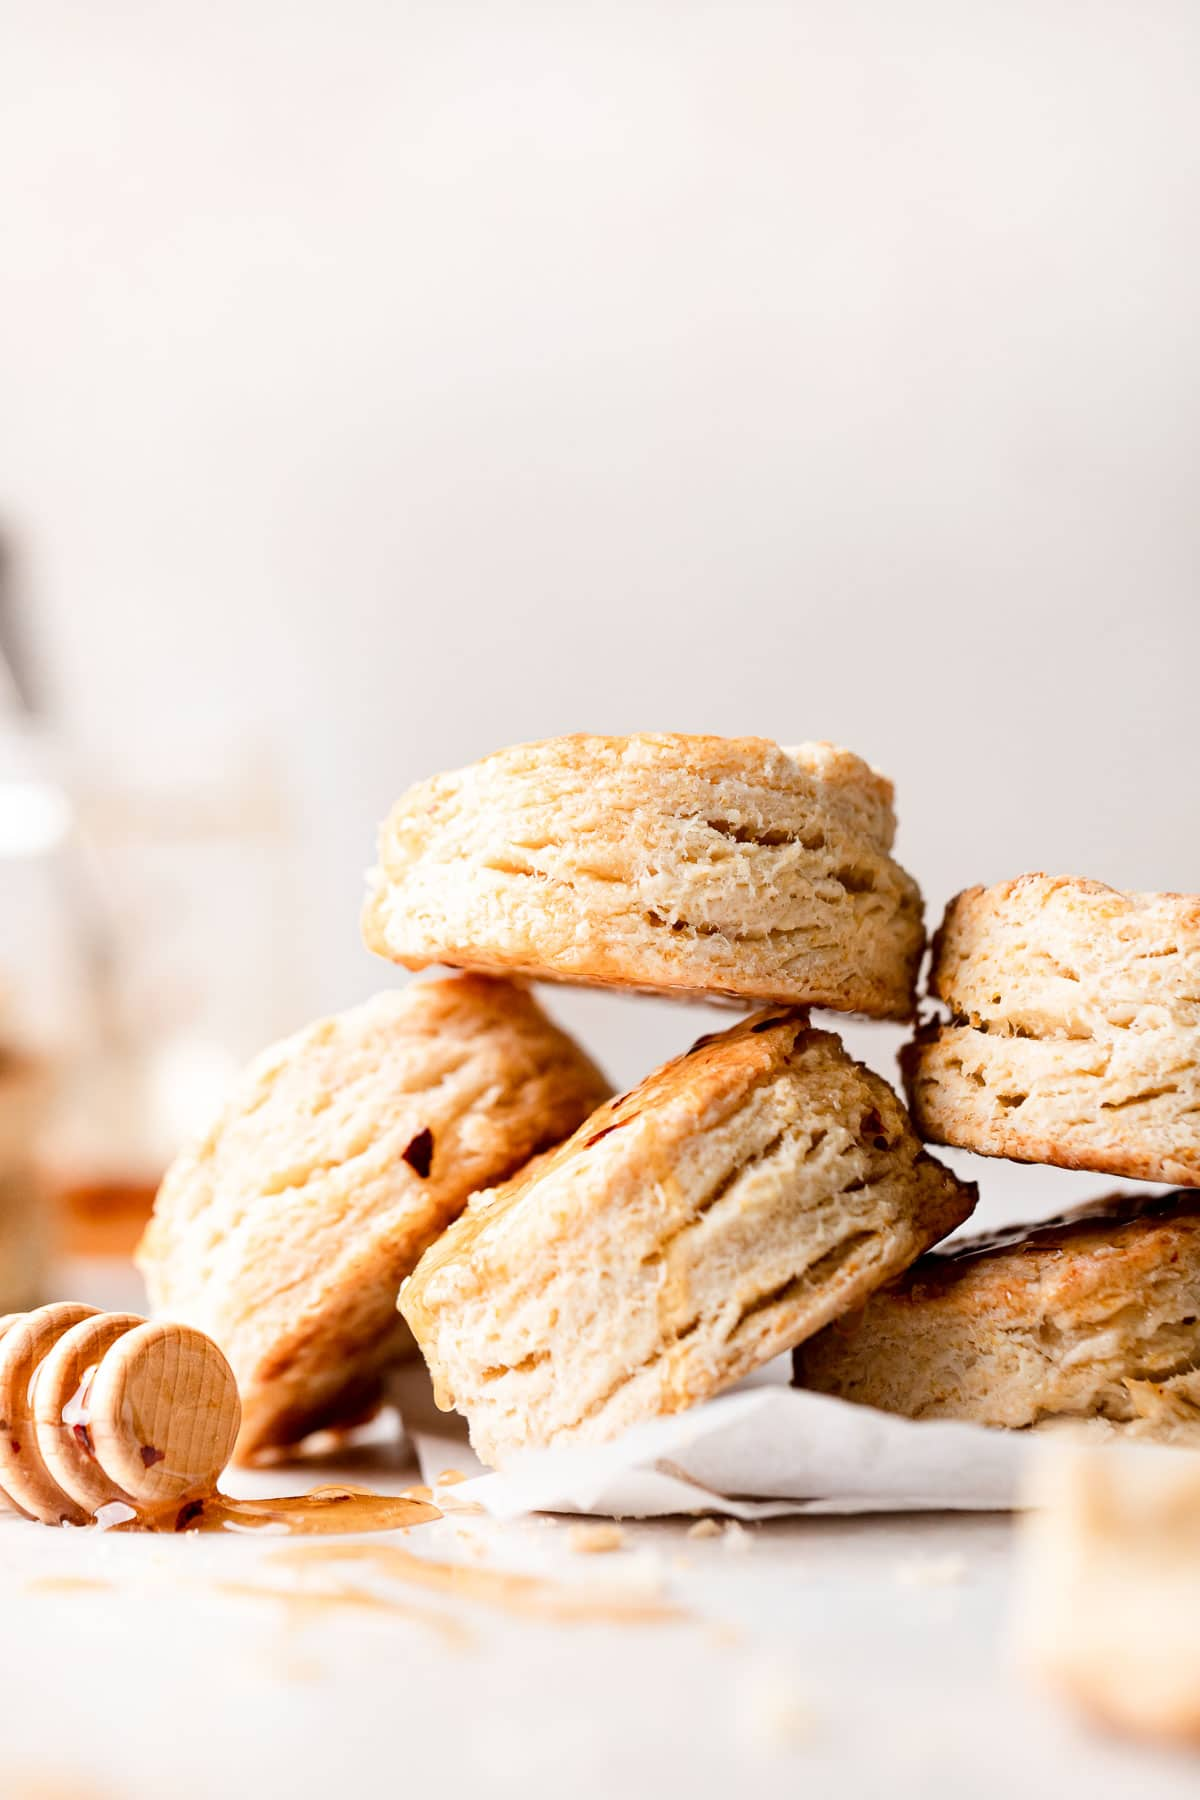 a pile of baked biscuits